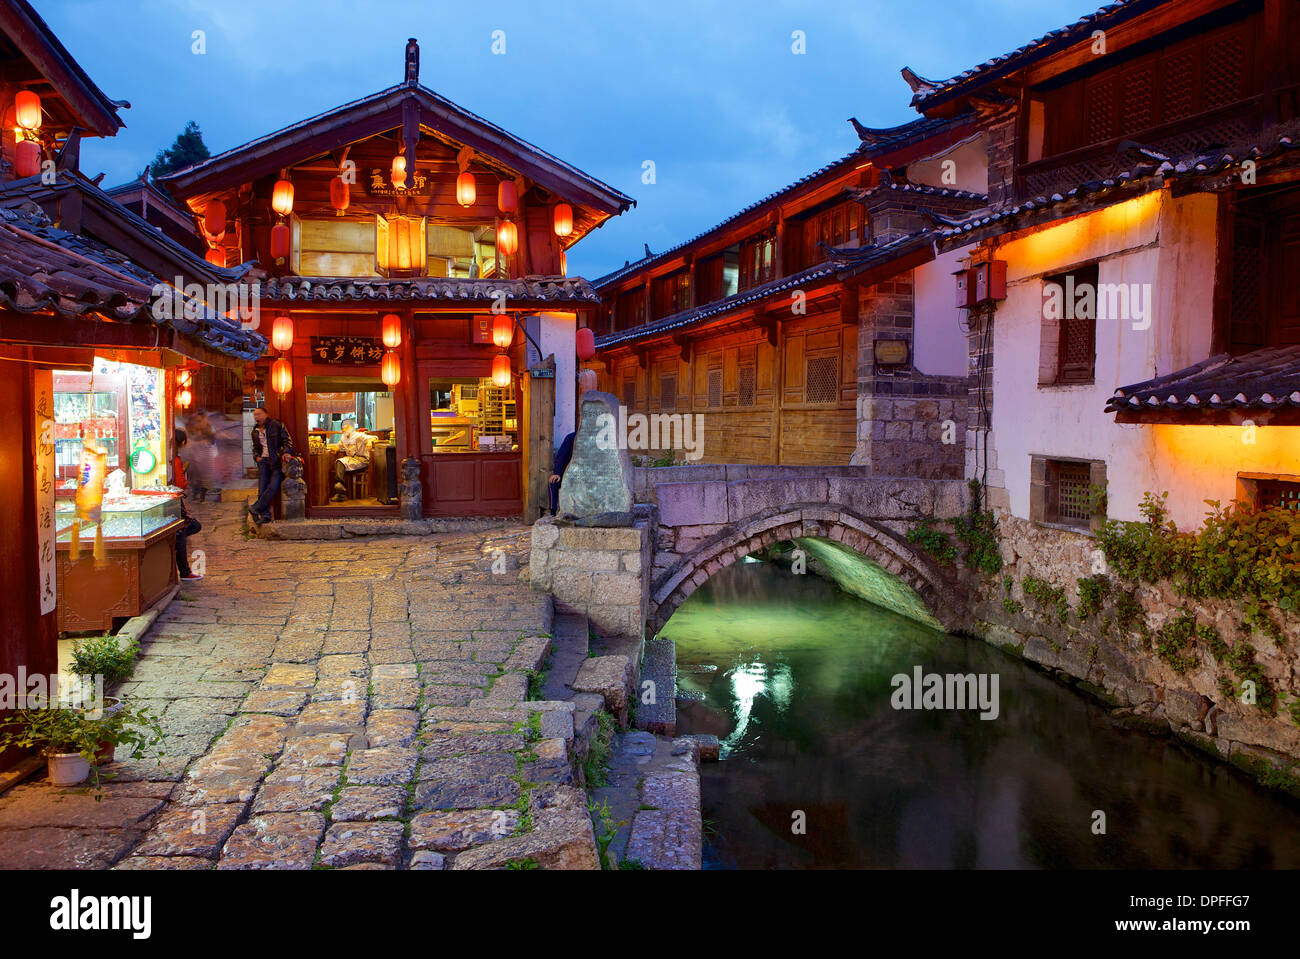 Twilight in the Old Town, Lijiang, UNESCO World Heritage Site, Yunnan Province, China, Asia - Stock Image